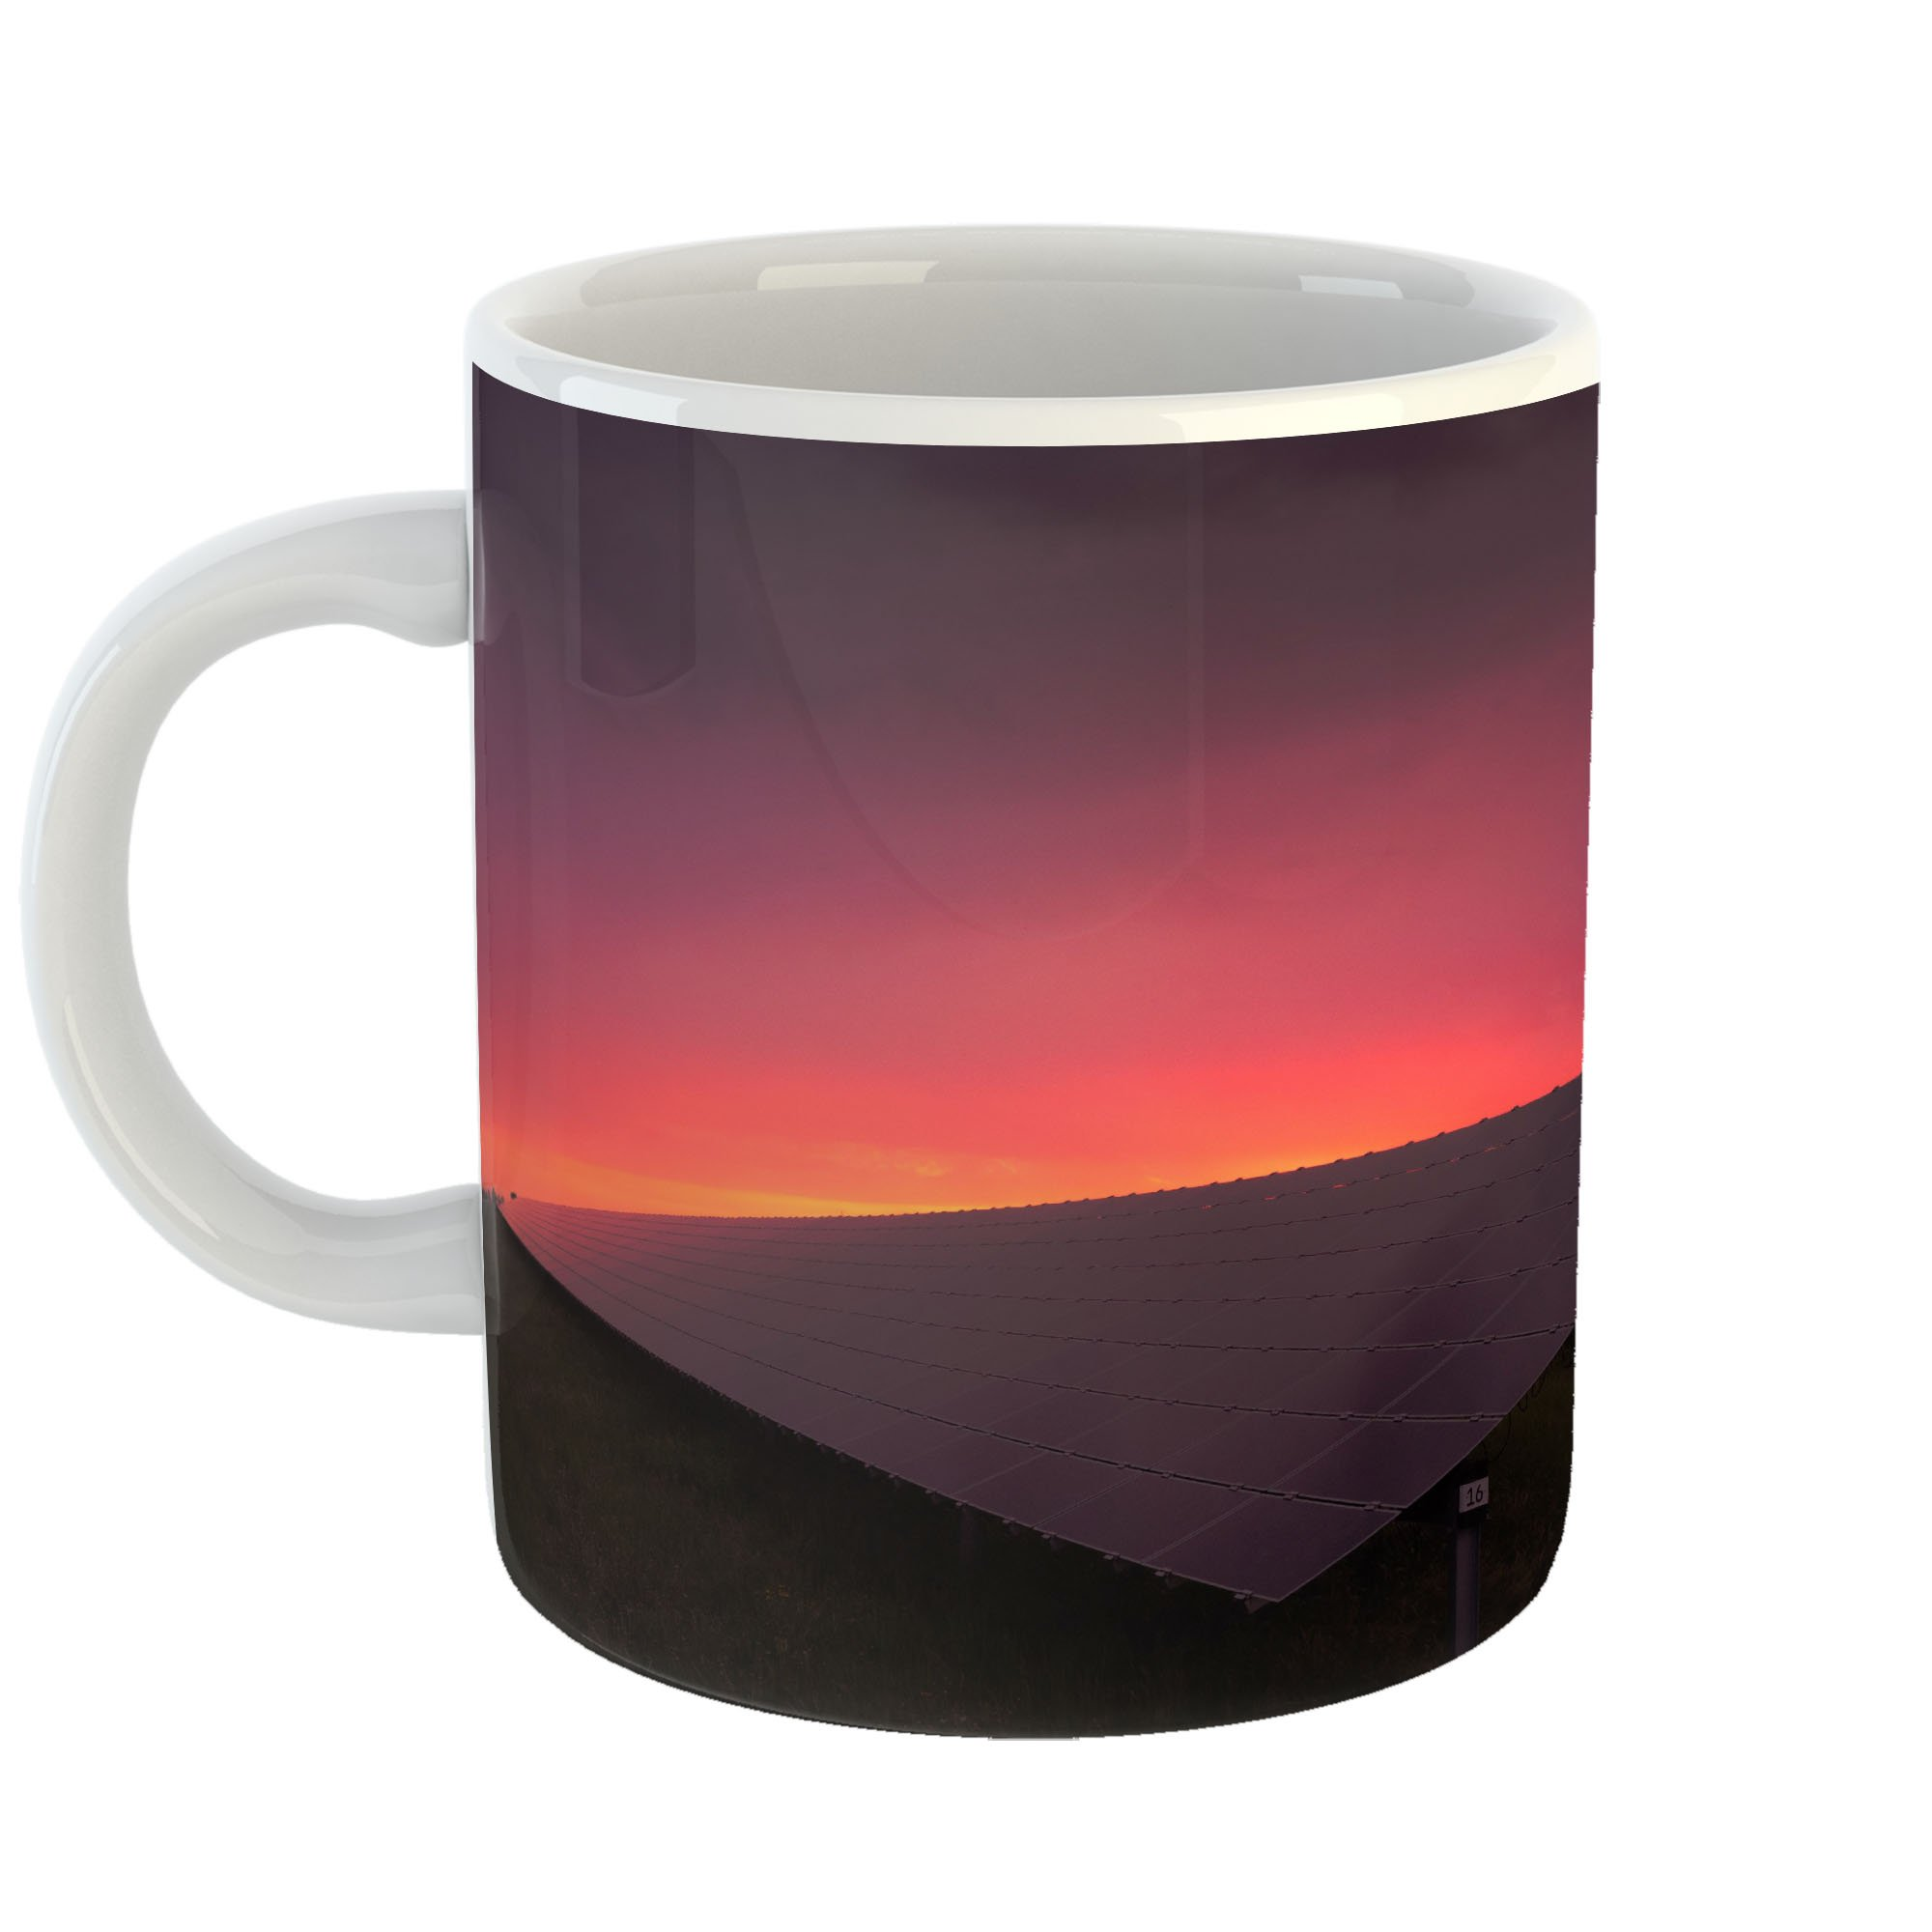 Westlake Art - Solar Sunset - 11oz Coffee Cup Mug - Modern Picture Photography Artwork Home Office Birthday Gift - 11 Ounce (36CE-951E8)